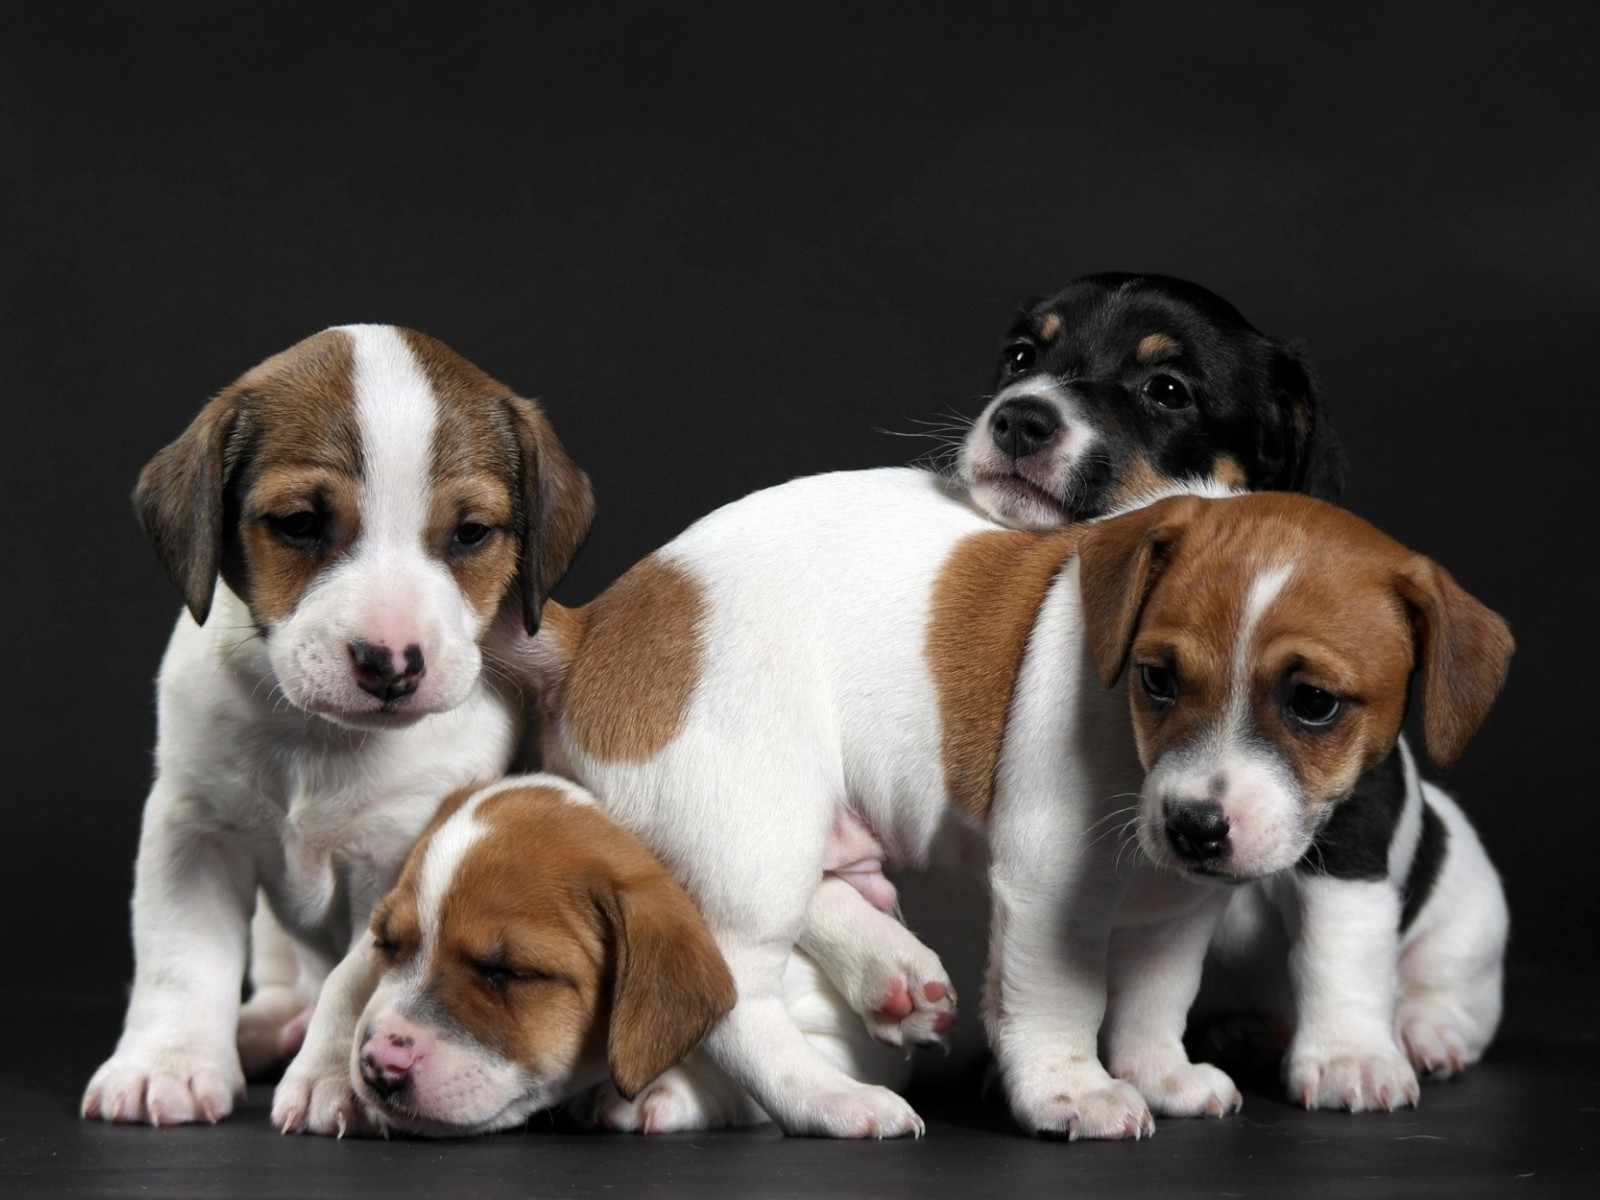 Cute Little Puppies for 1600 x 1200 resolution